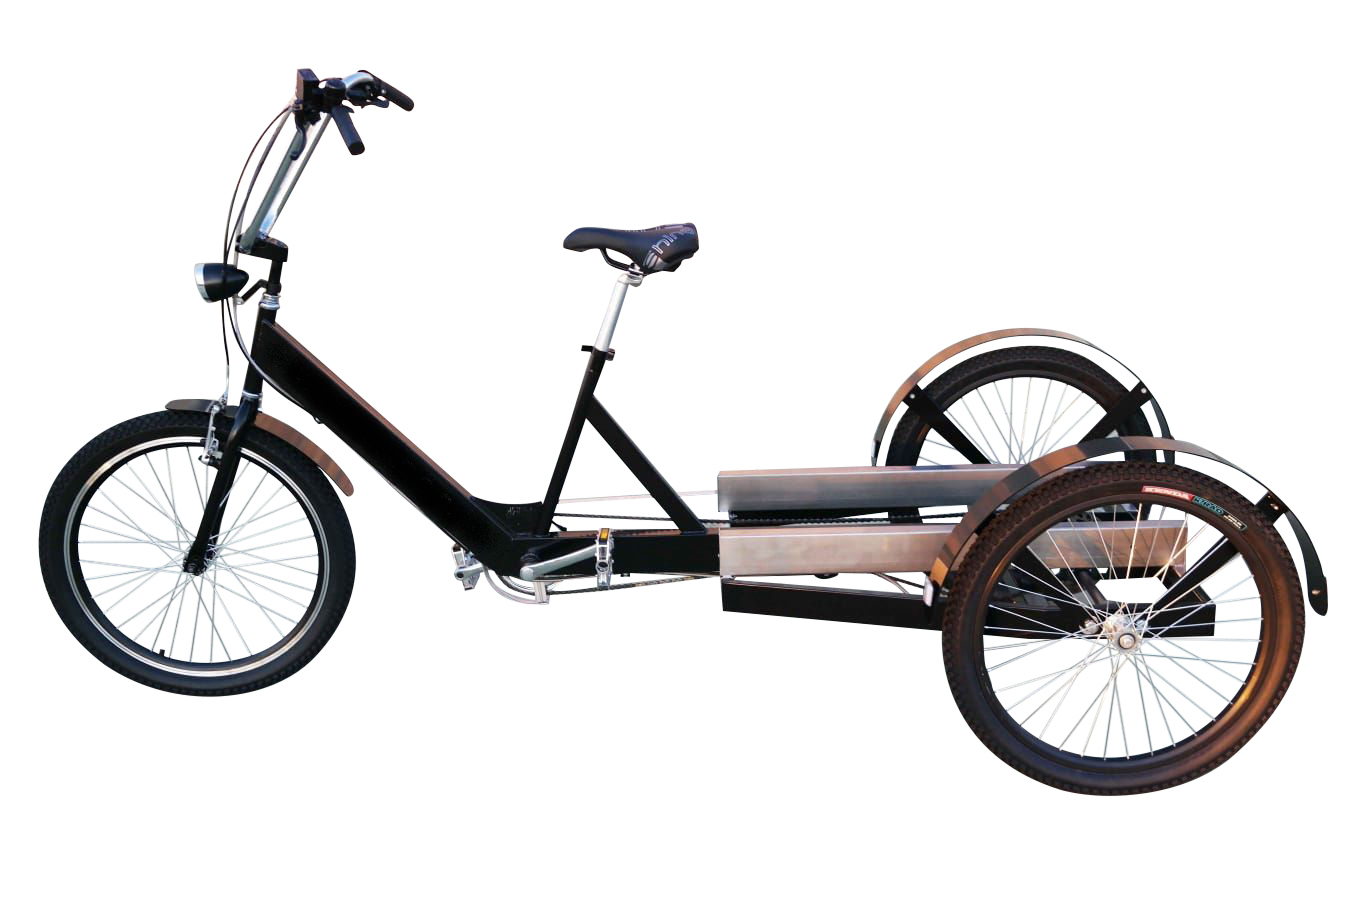 ITALIEN Dreirad Cargo Bike Heck mit Differential